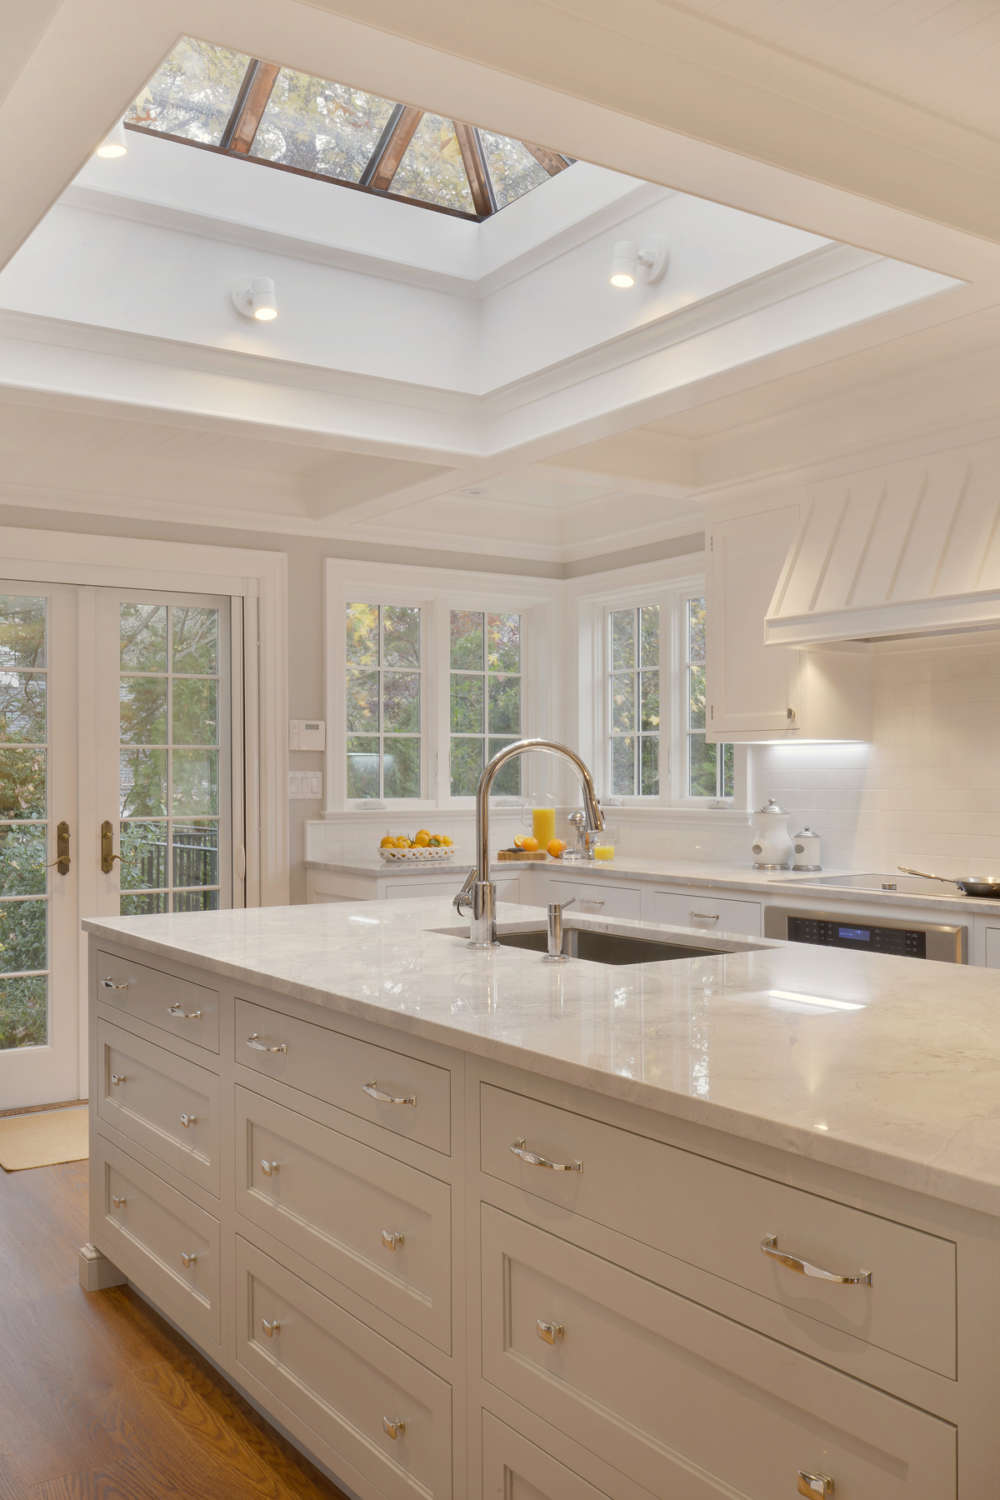 Traditional kitchen with skylight, white painted fully custom Rutt Regency cabinets, light countertops and natural oak flooring. Designed by Fabrice Garson of Bilotta Kitchens.